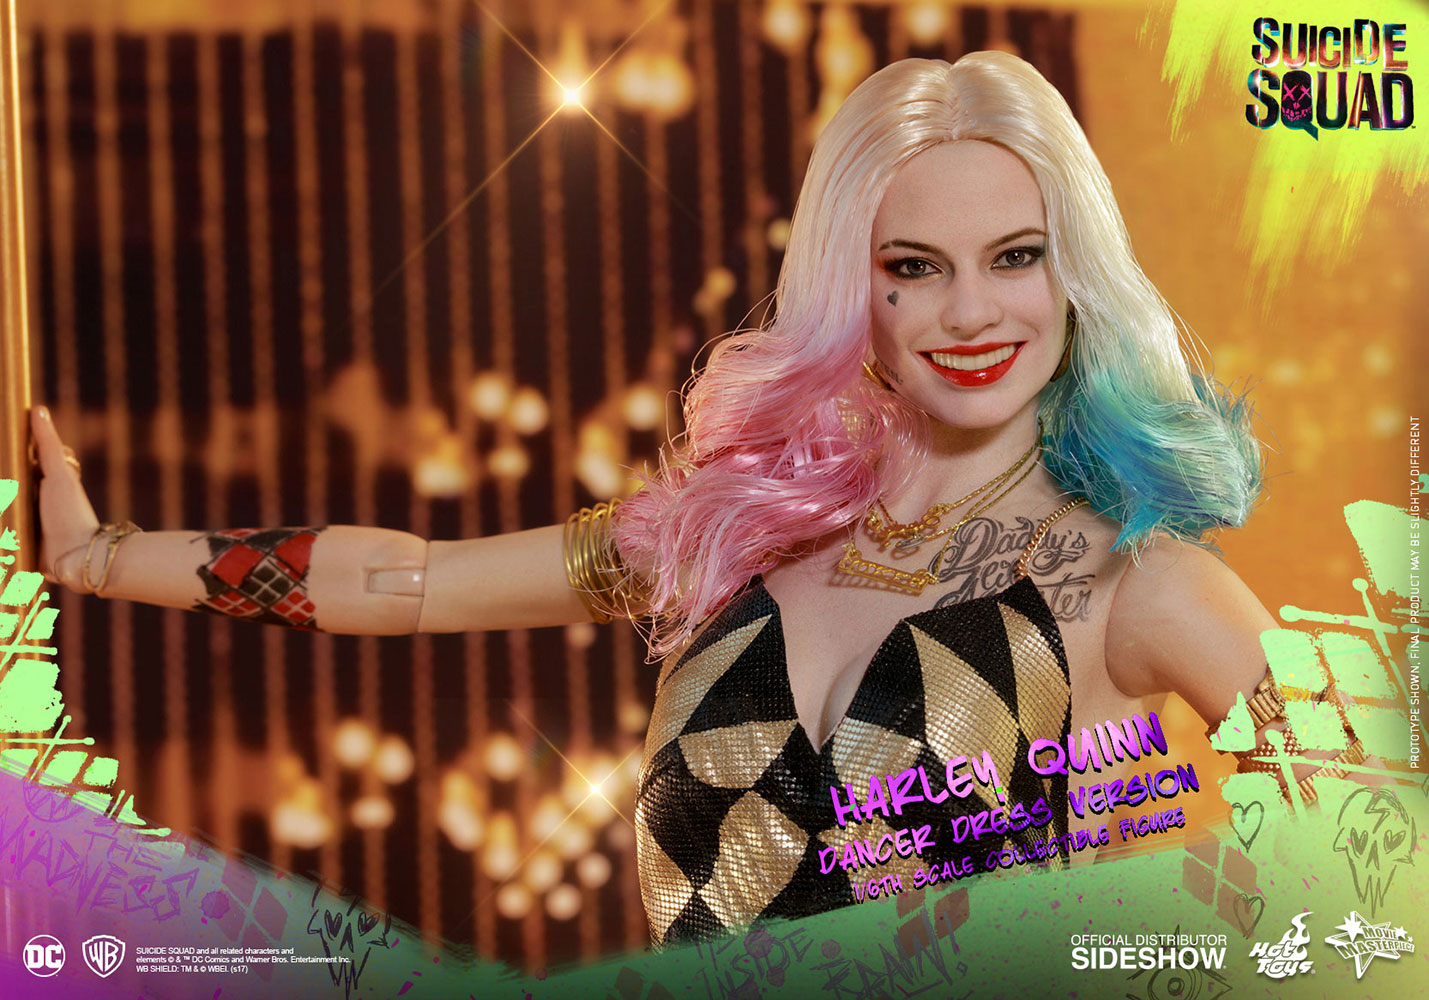 hot-toys-harley-quinn-suicide-squad-dancer-dress-figure-1